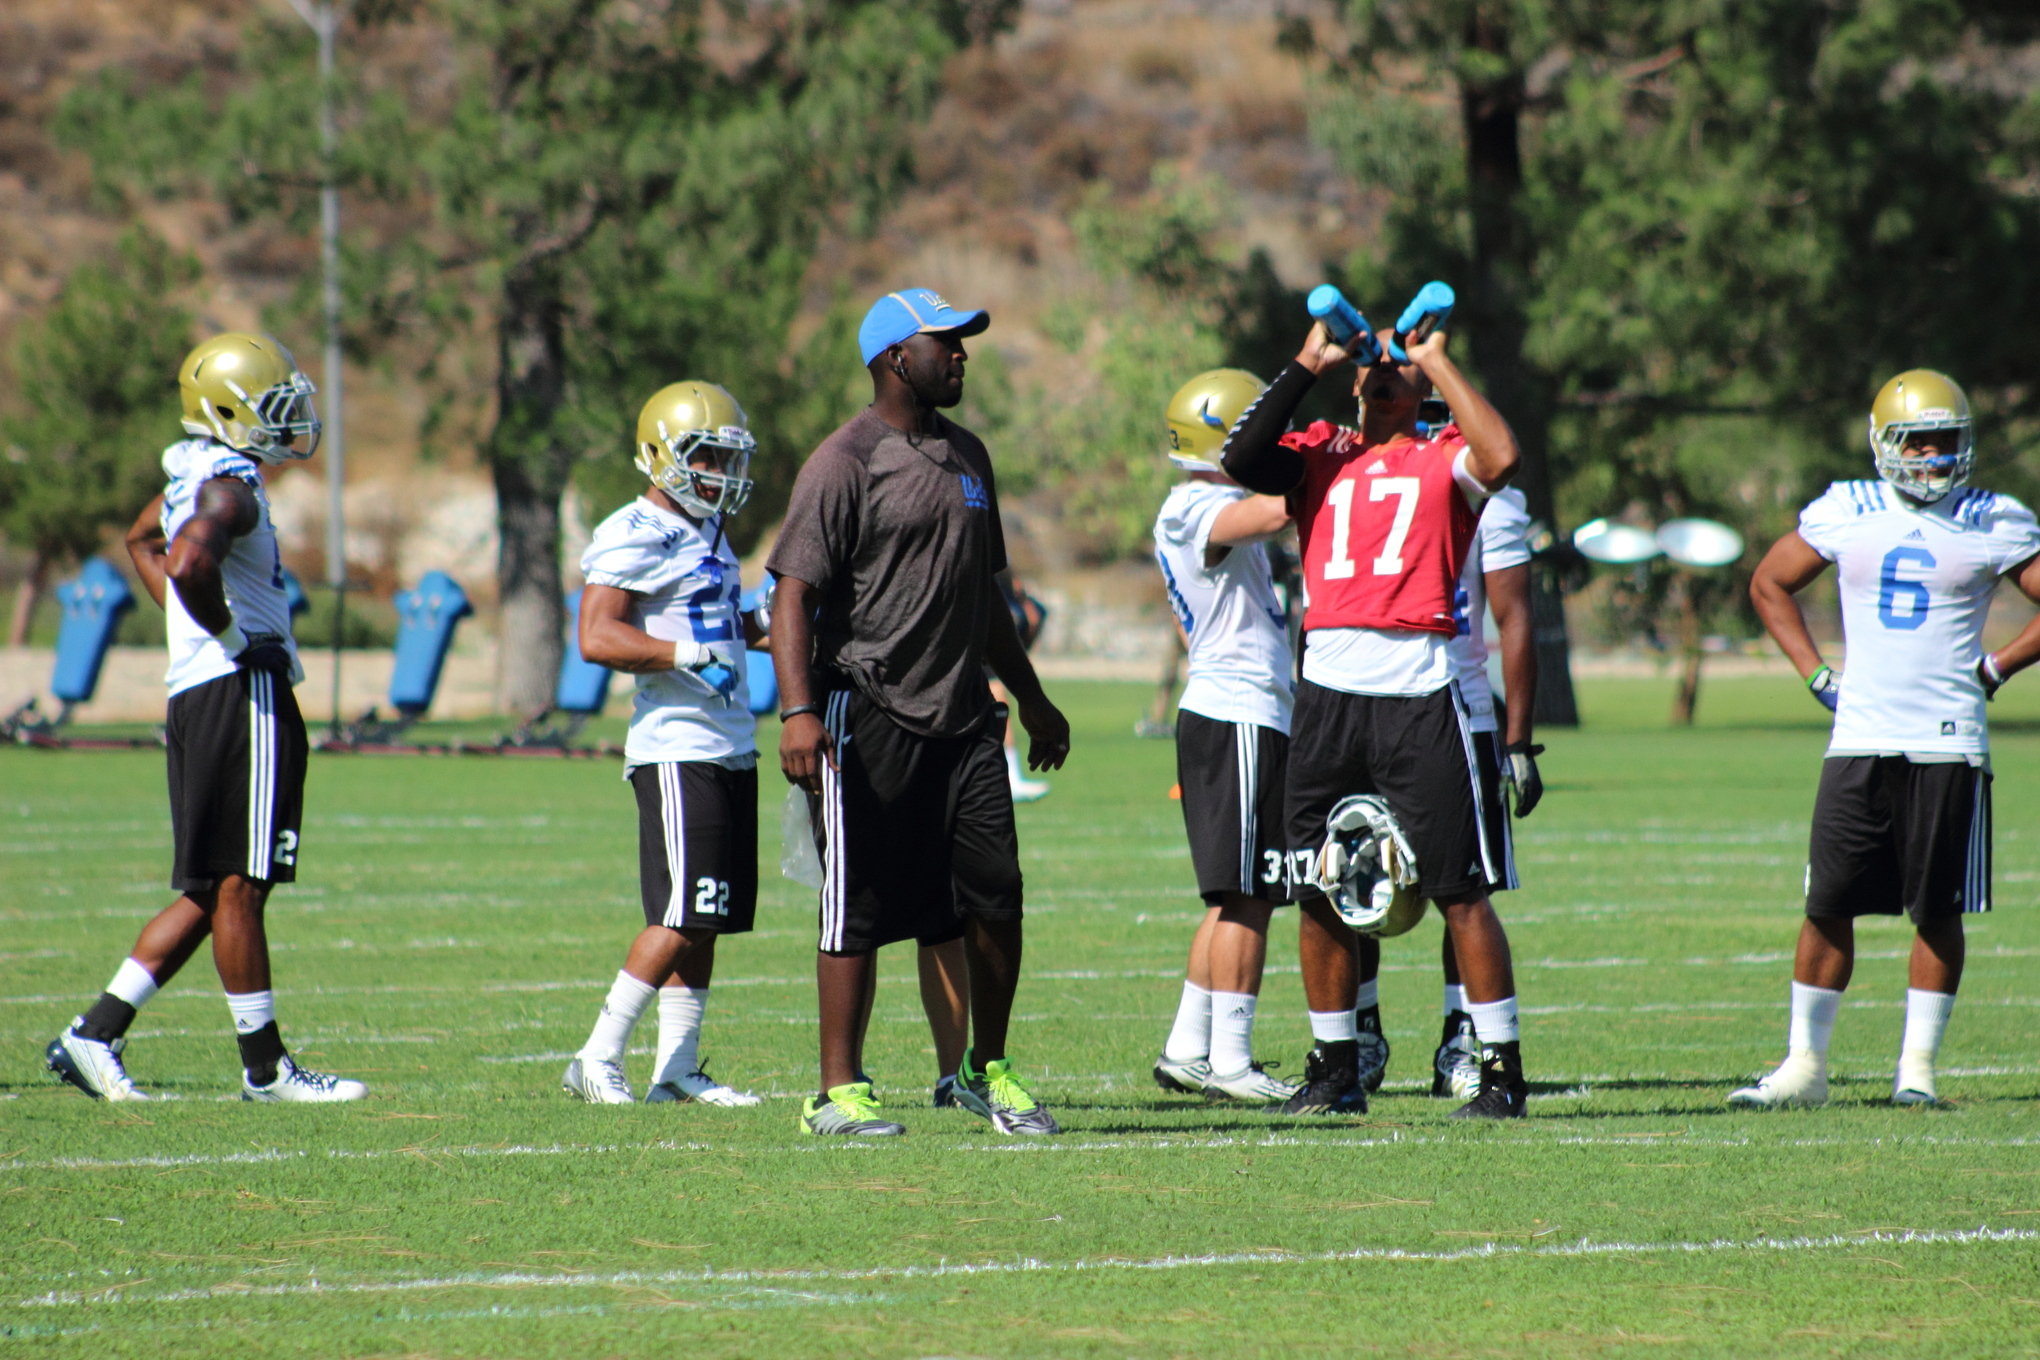 Brett Hundley re-hydrating a few days ago. Players will be doing a lot of that today.